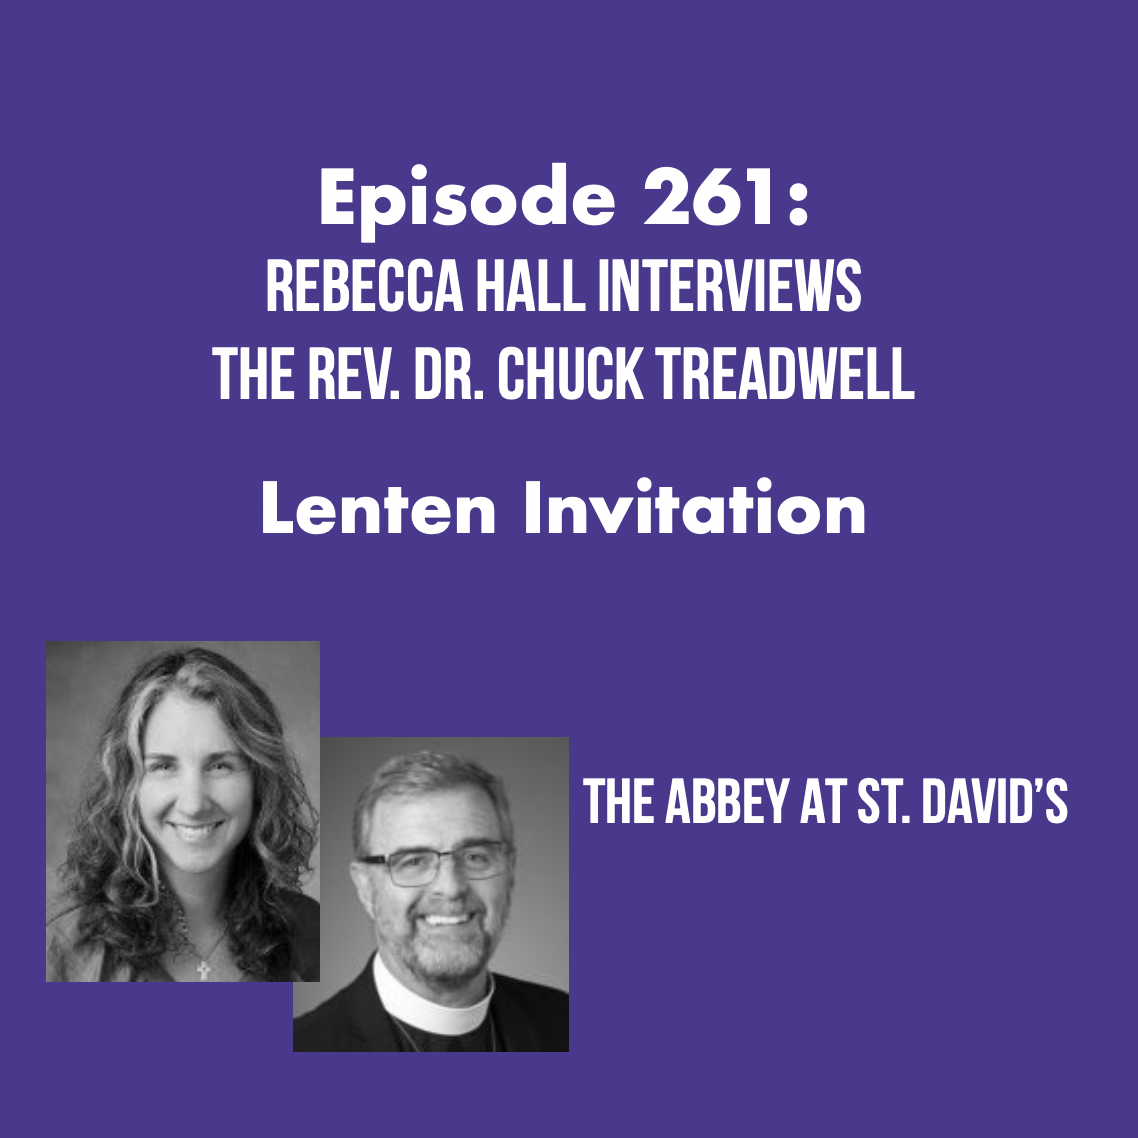 Episode 261: Rebecca Hall Interviews The Rev. Chuck Treadwell About the Lenten Invitation